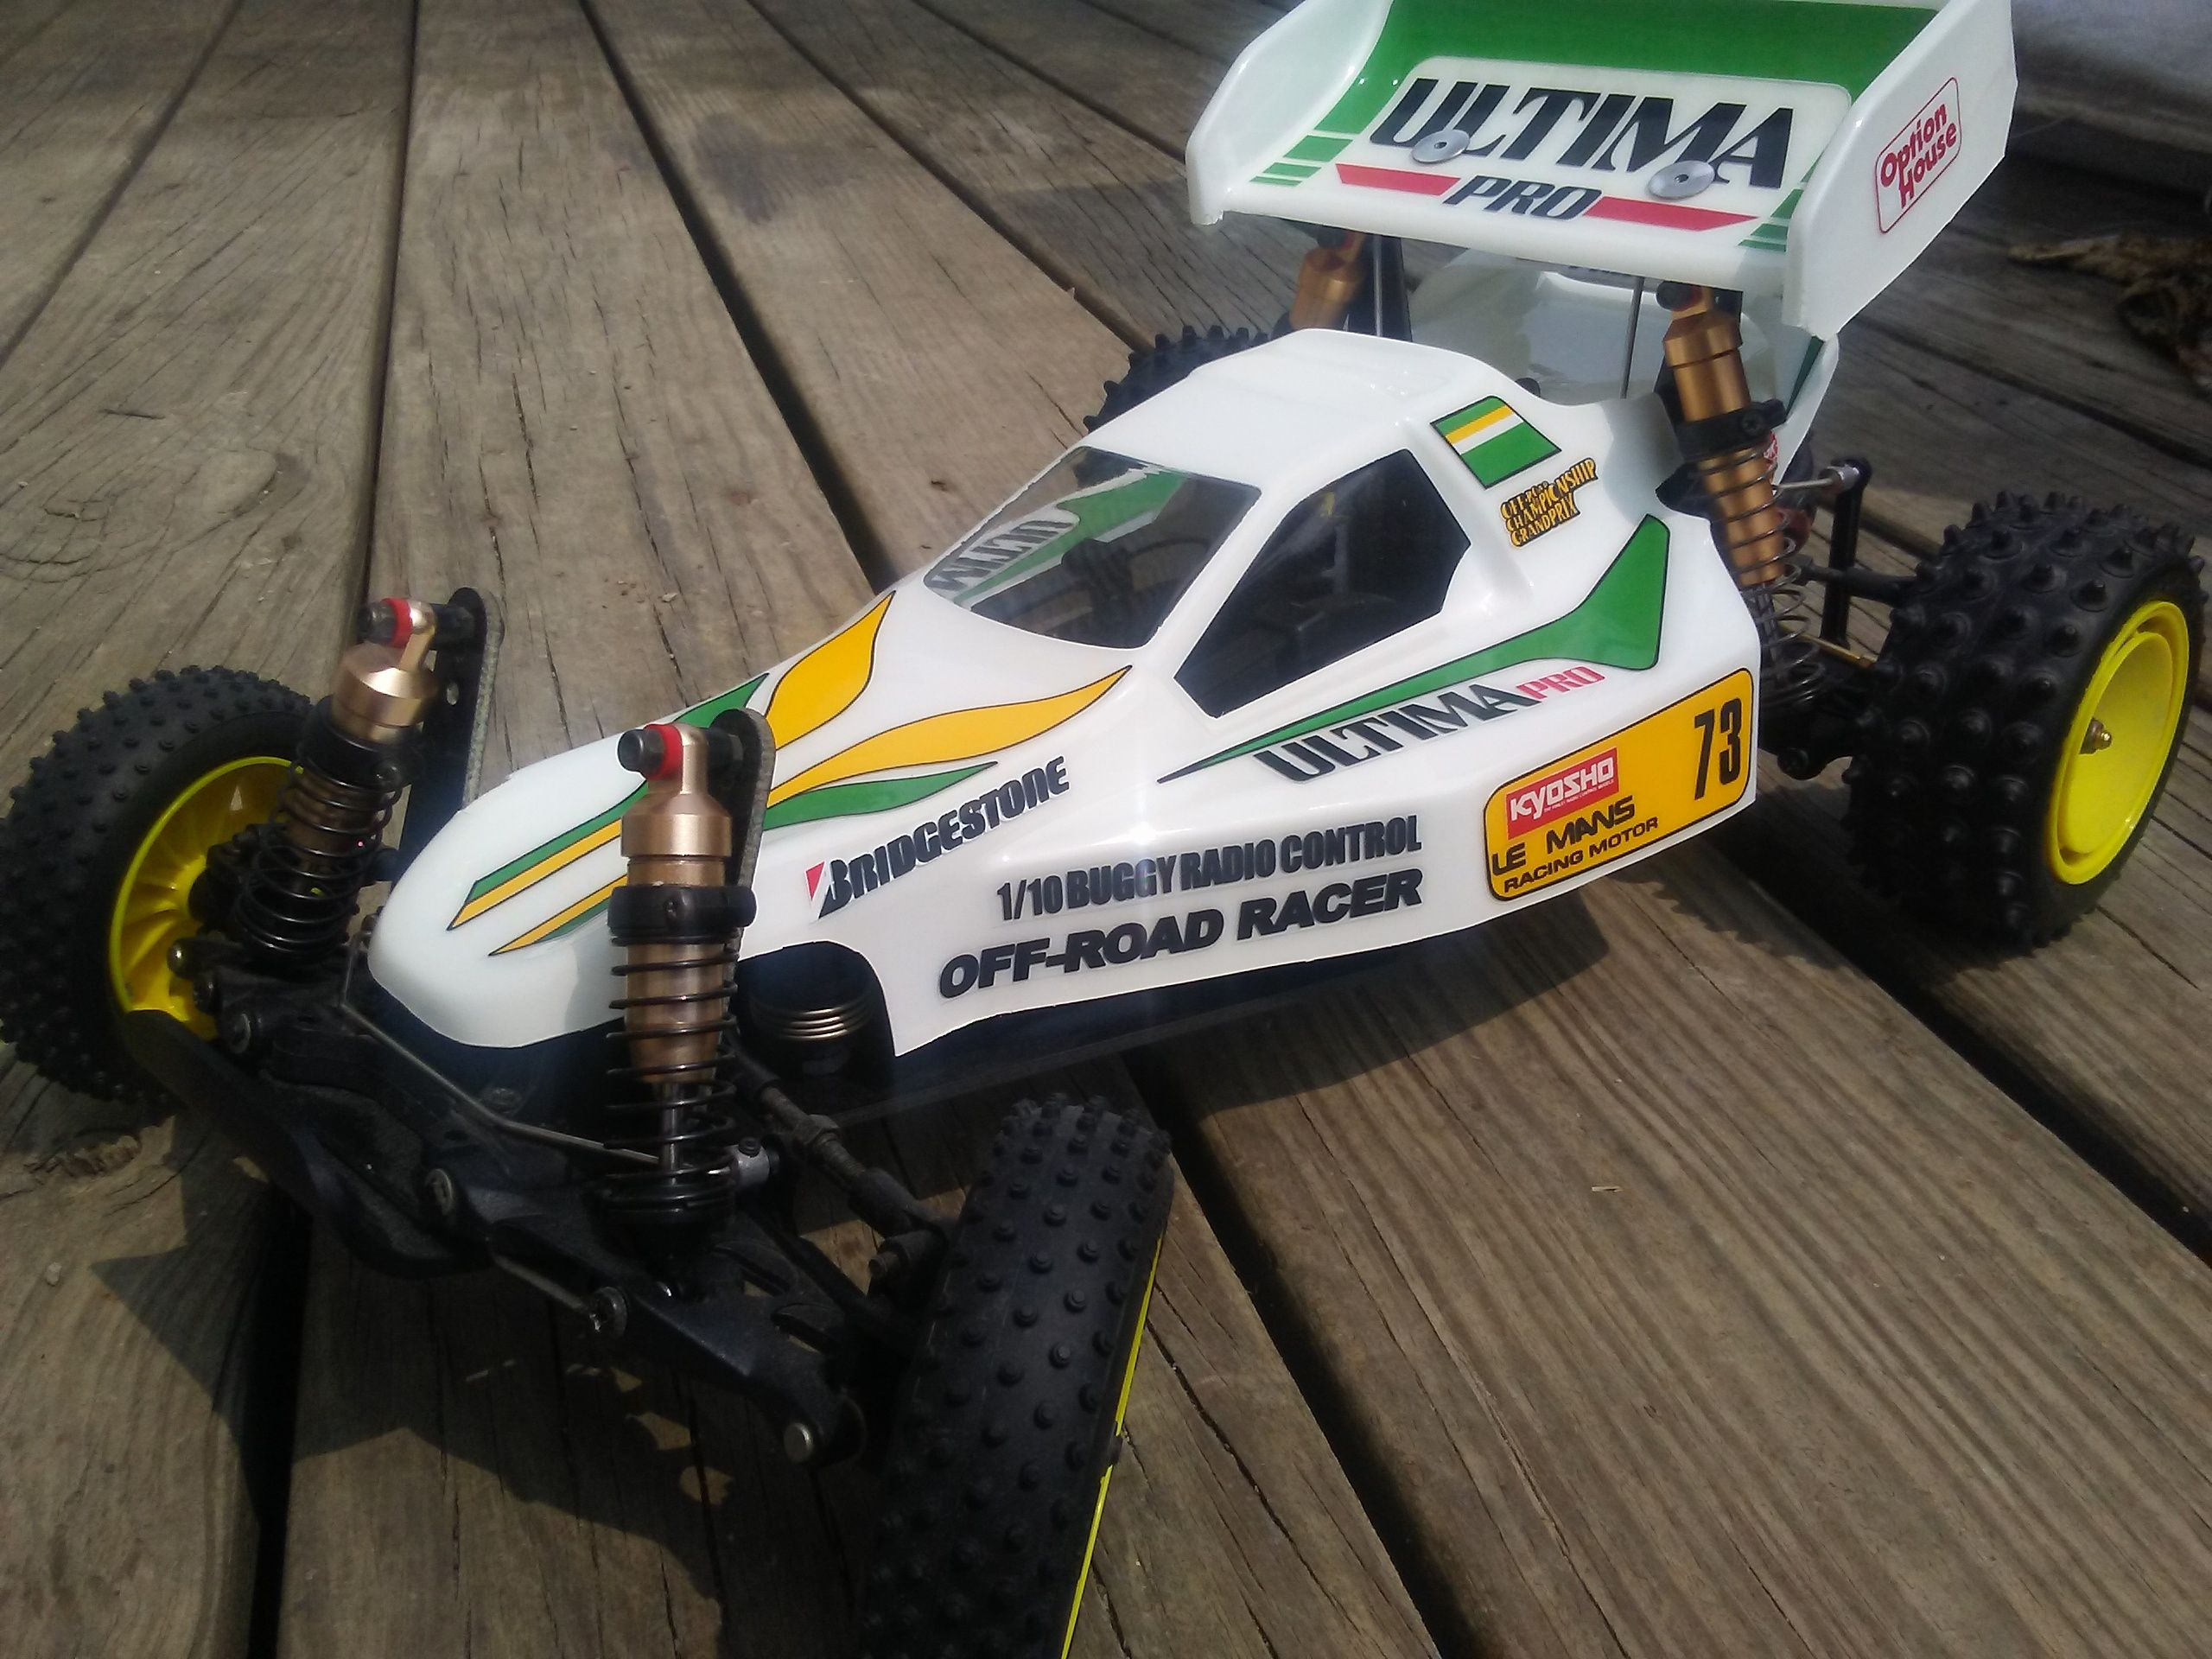 NEW KYOSHO ULTIMA 1/10 RC BUGGY KIT VINTAGE RE-RELEASE